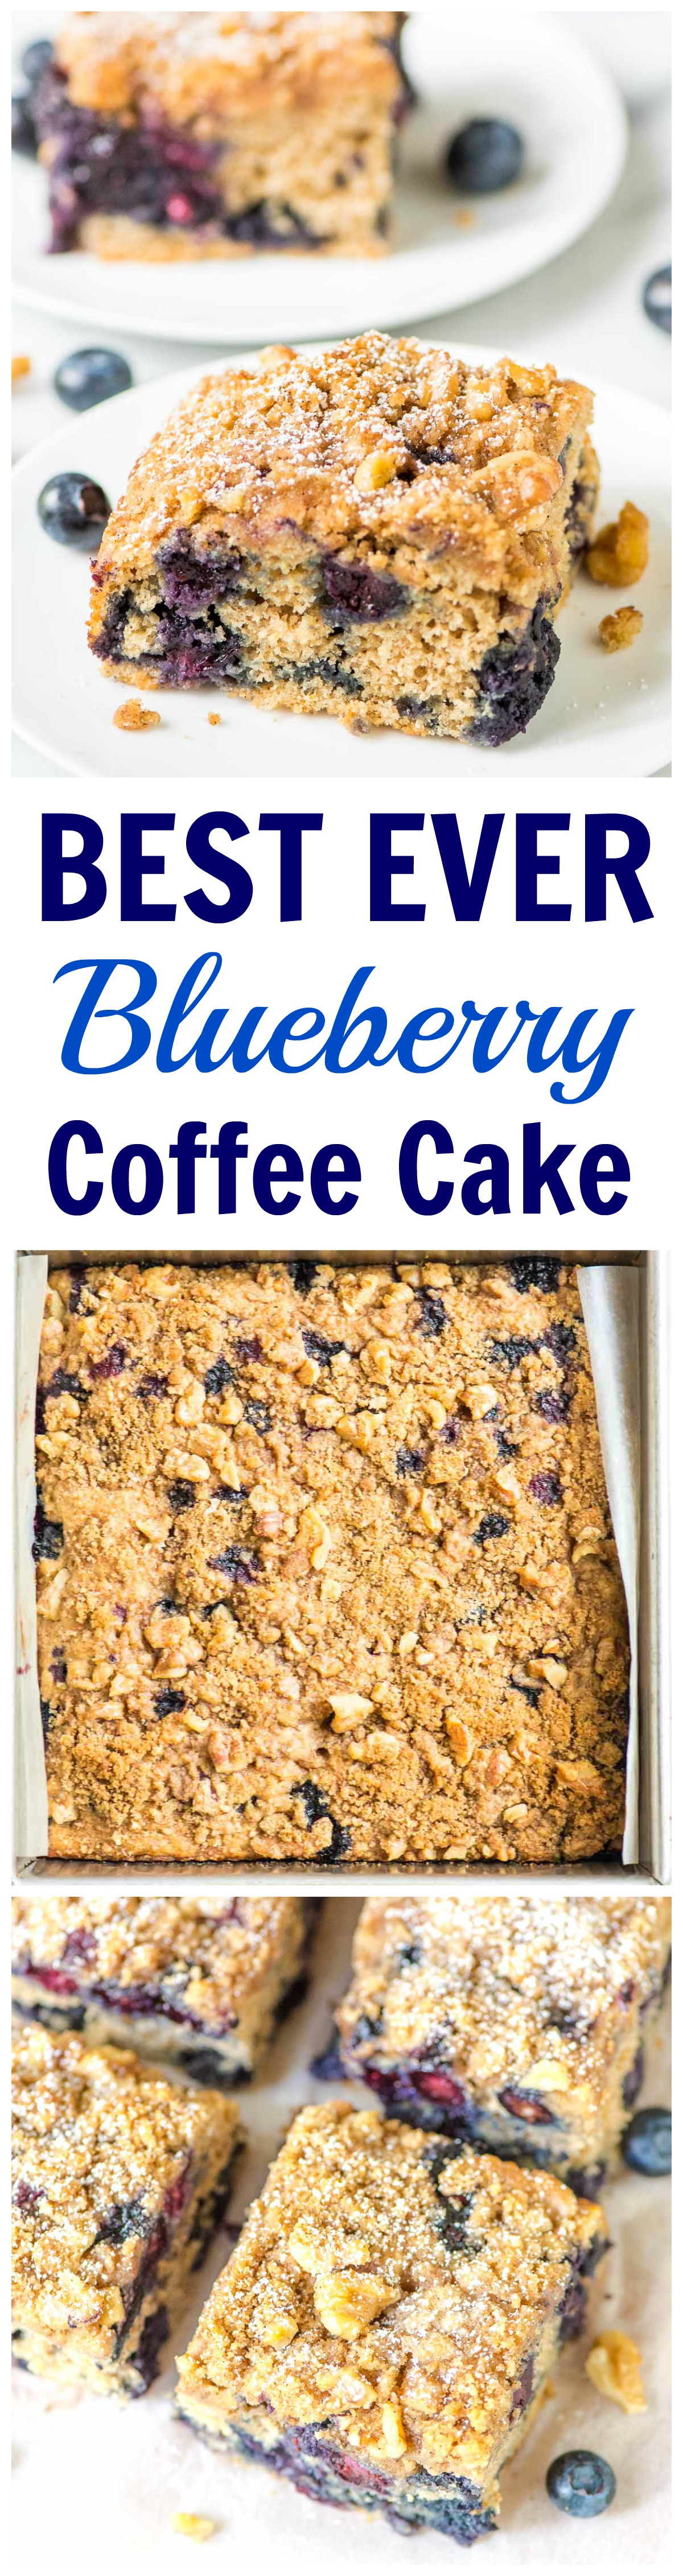 This is the BEST EVER Blueberry Coffee Cake recipe — Ultra